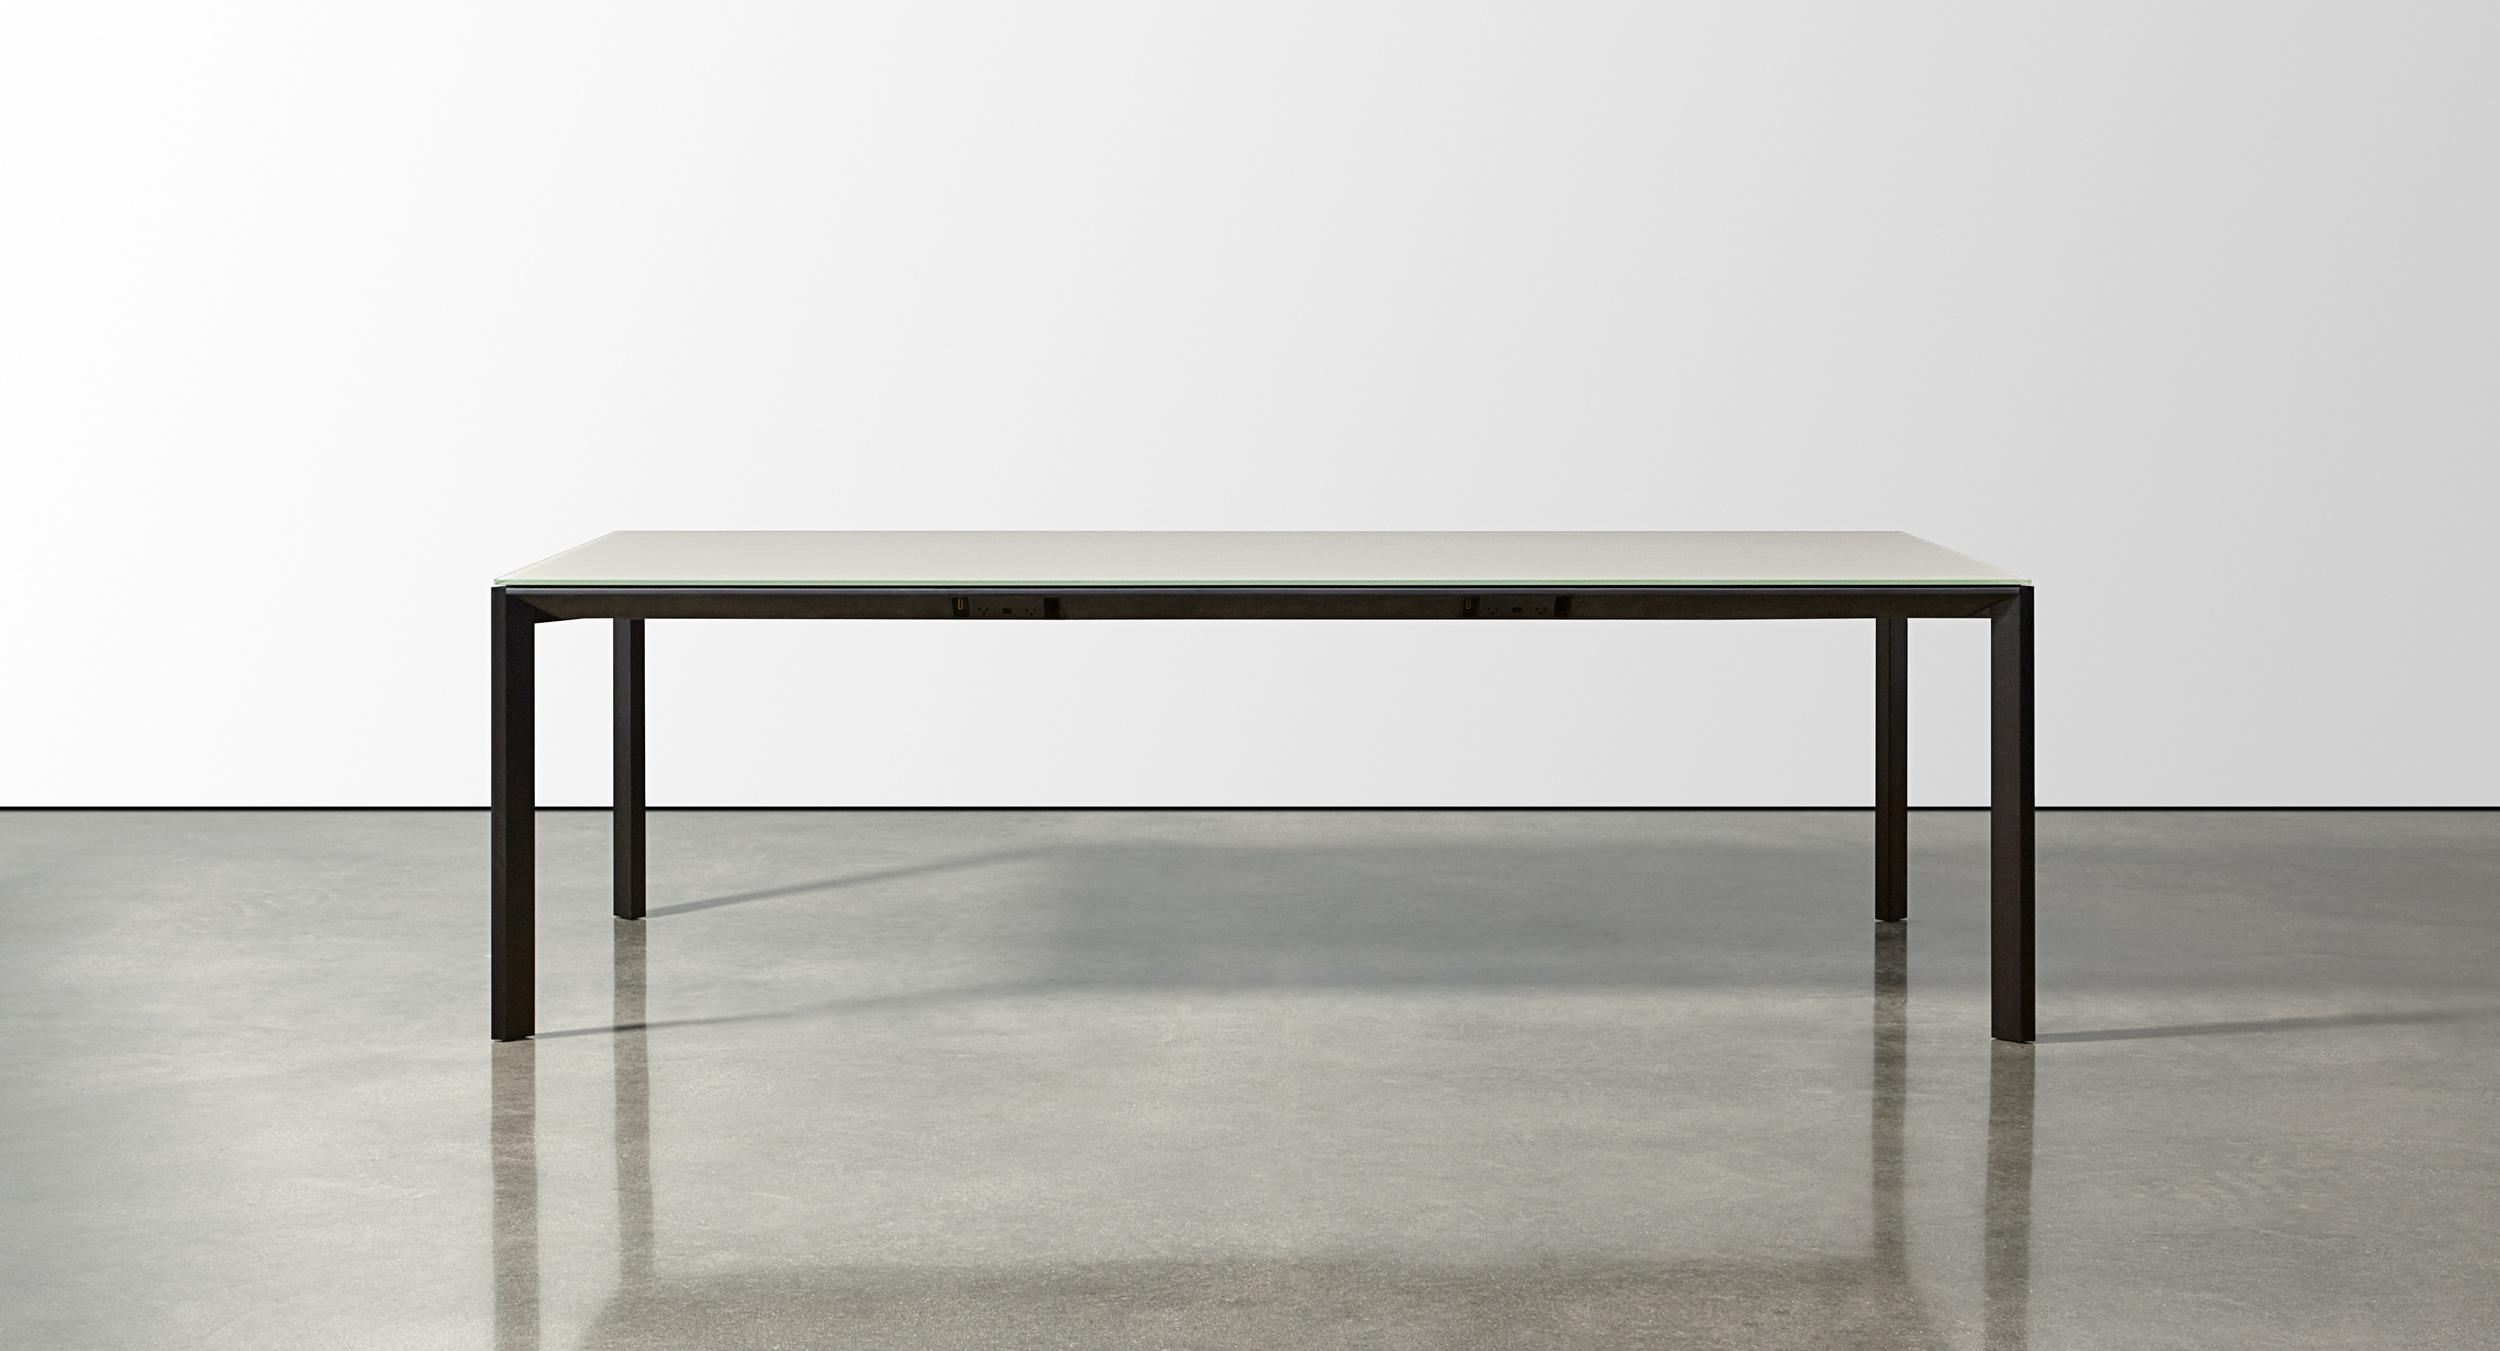 Halo tables are available in a full range of materials, sizes, and shapes to suit any project need.